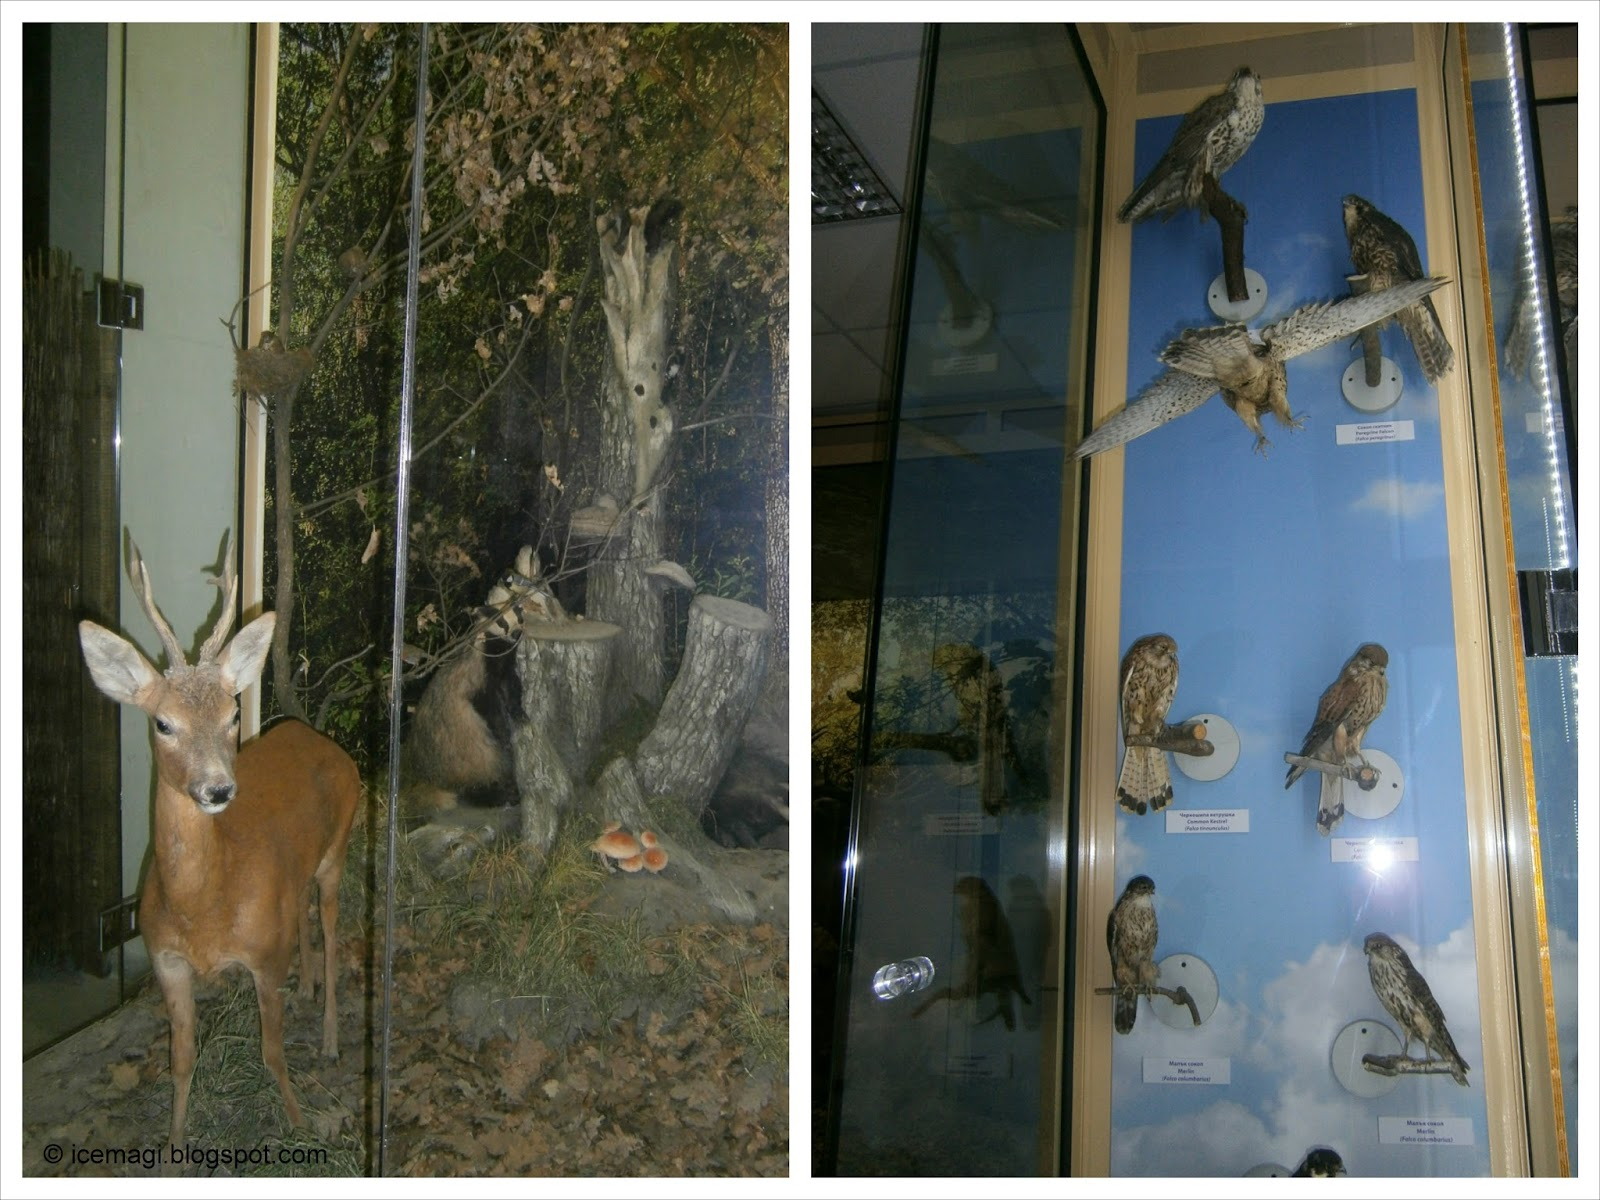 The Eco museum - Ruse, Bulgaria